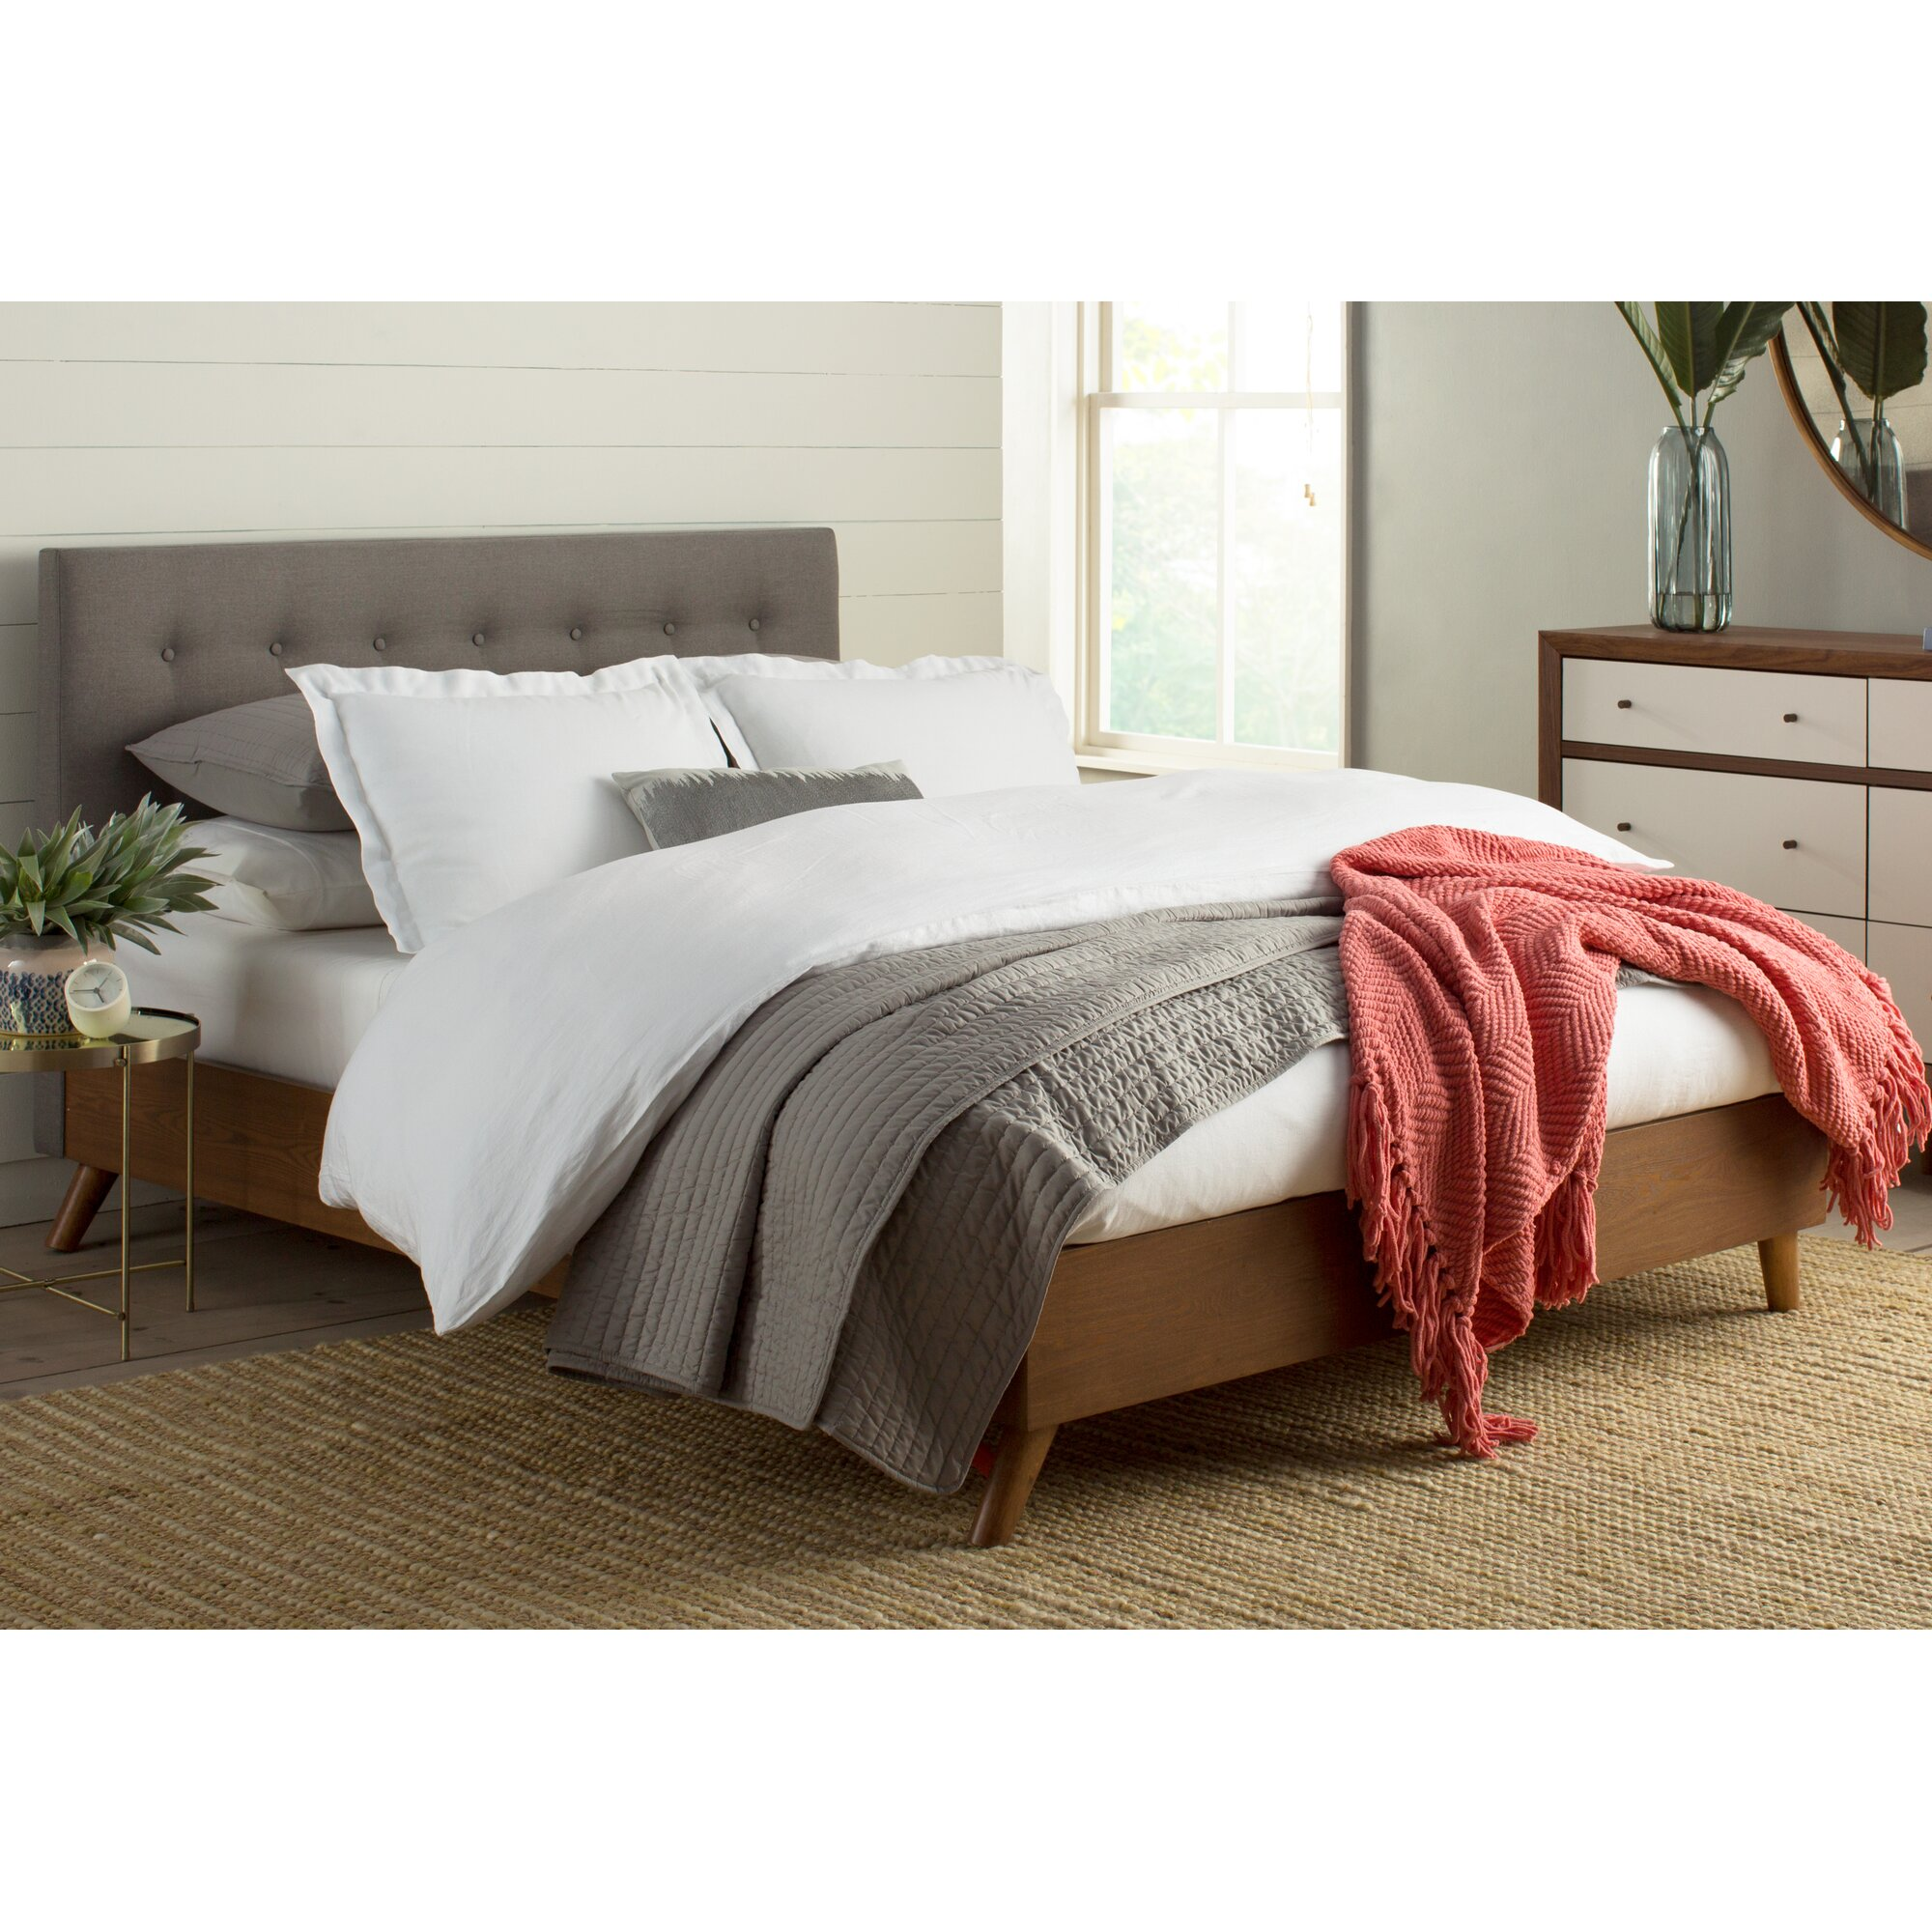 Room and board platform bed - Room And Board Platform Bed Smallwood Upholstered Platform Bed